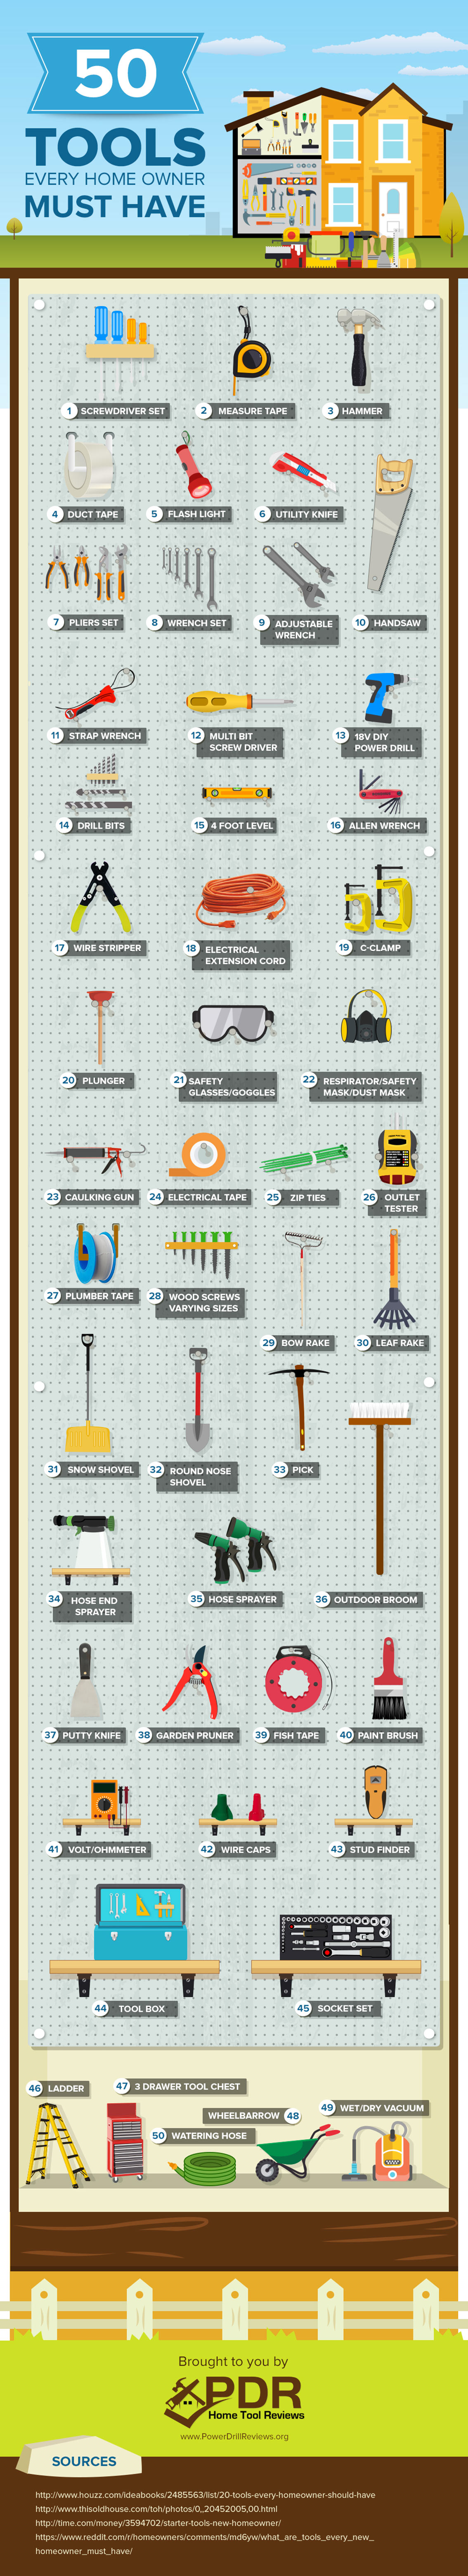 Must Have Home Improvement Tools - Home Repair Infographic